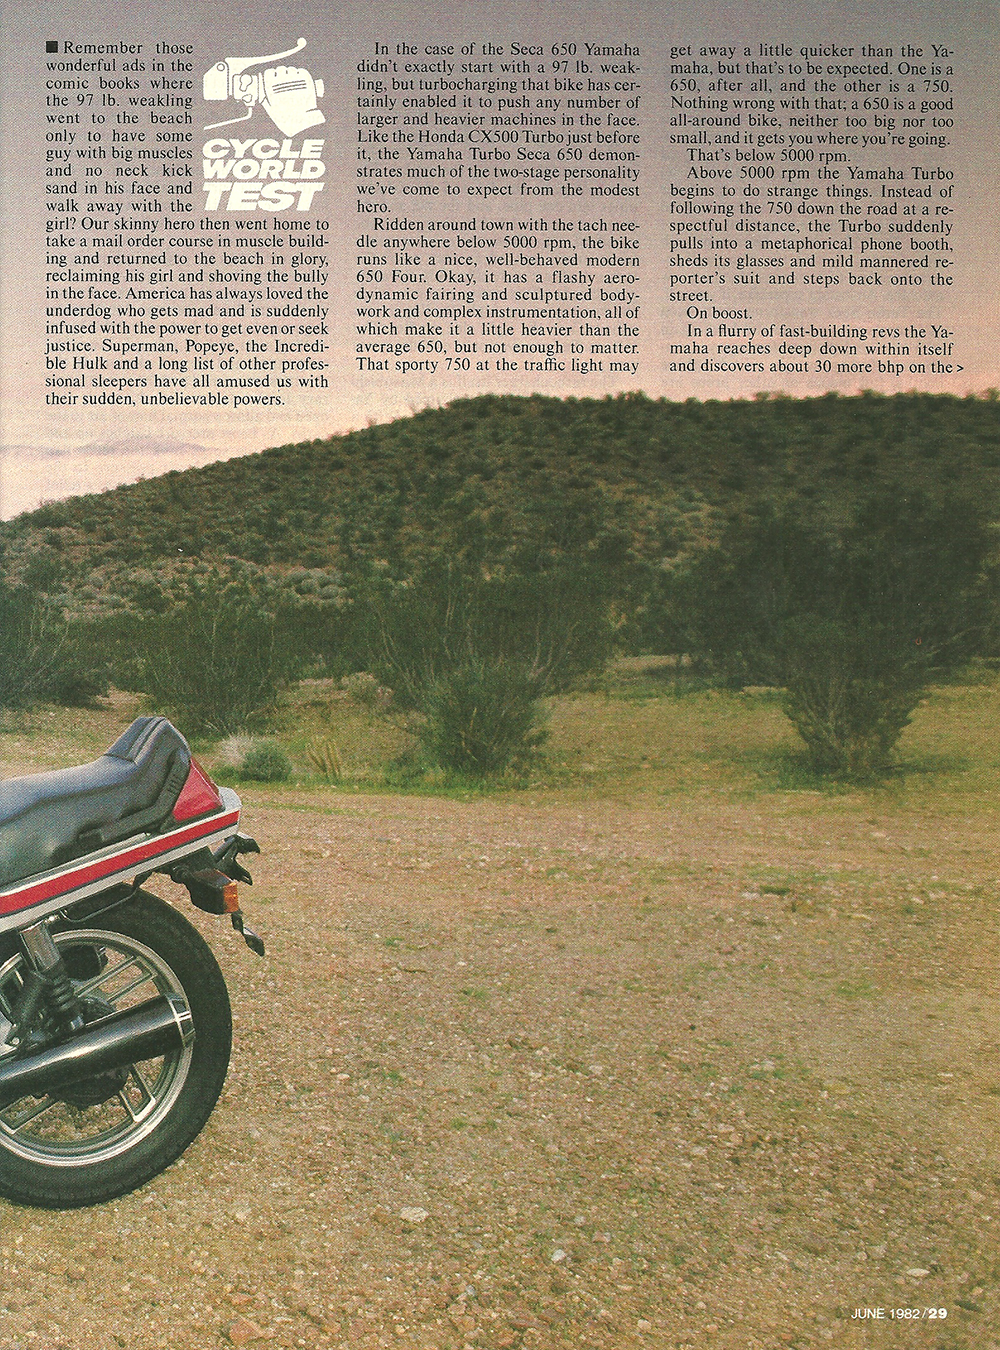 1982 Yamaha Turbo Seca 650 road test 02.jpg